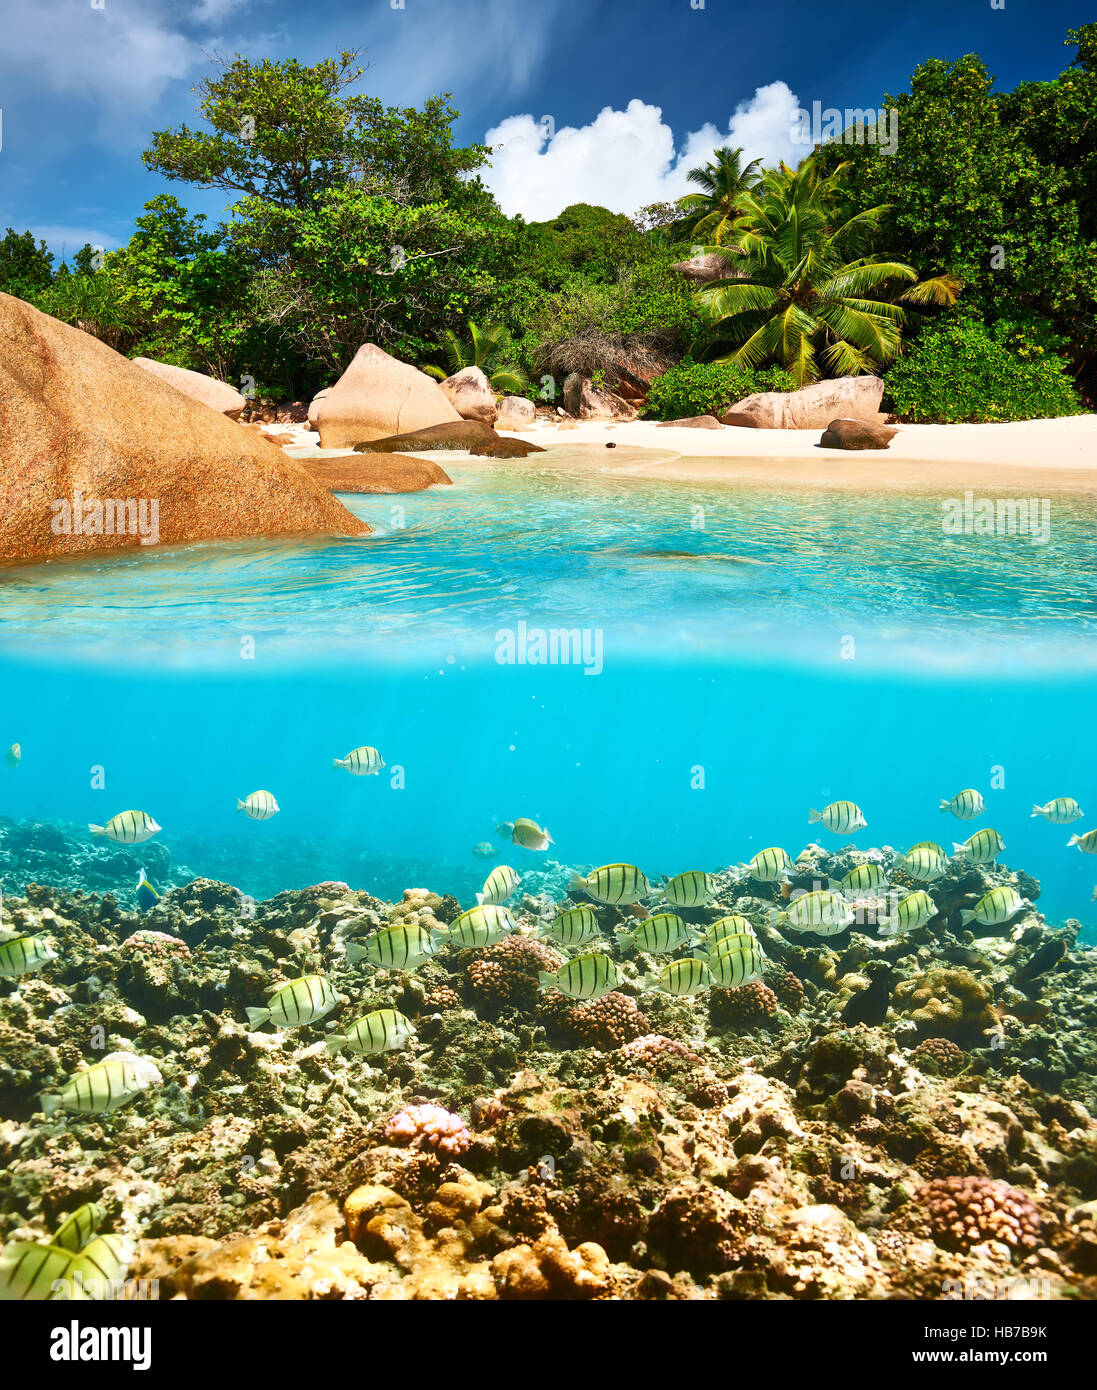 Coral reef and fish at Seychelles - Stock Image